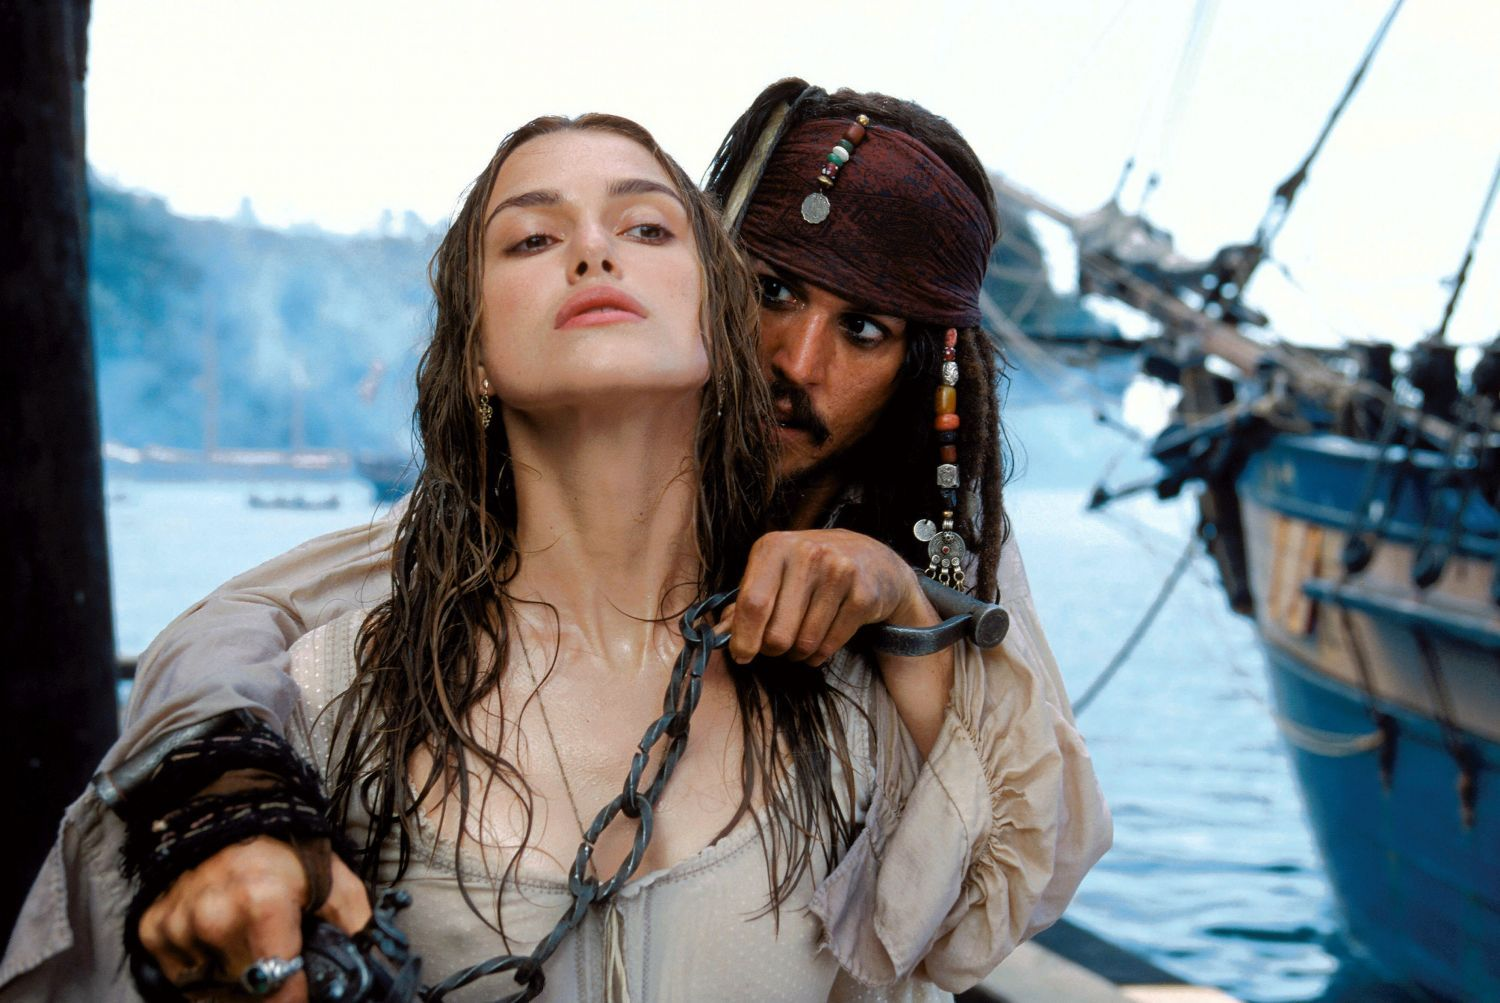 Pirates of the Caribbean: The Curse of the Black Pearl - Movie stills